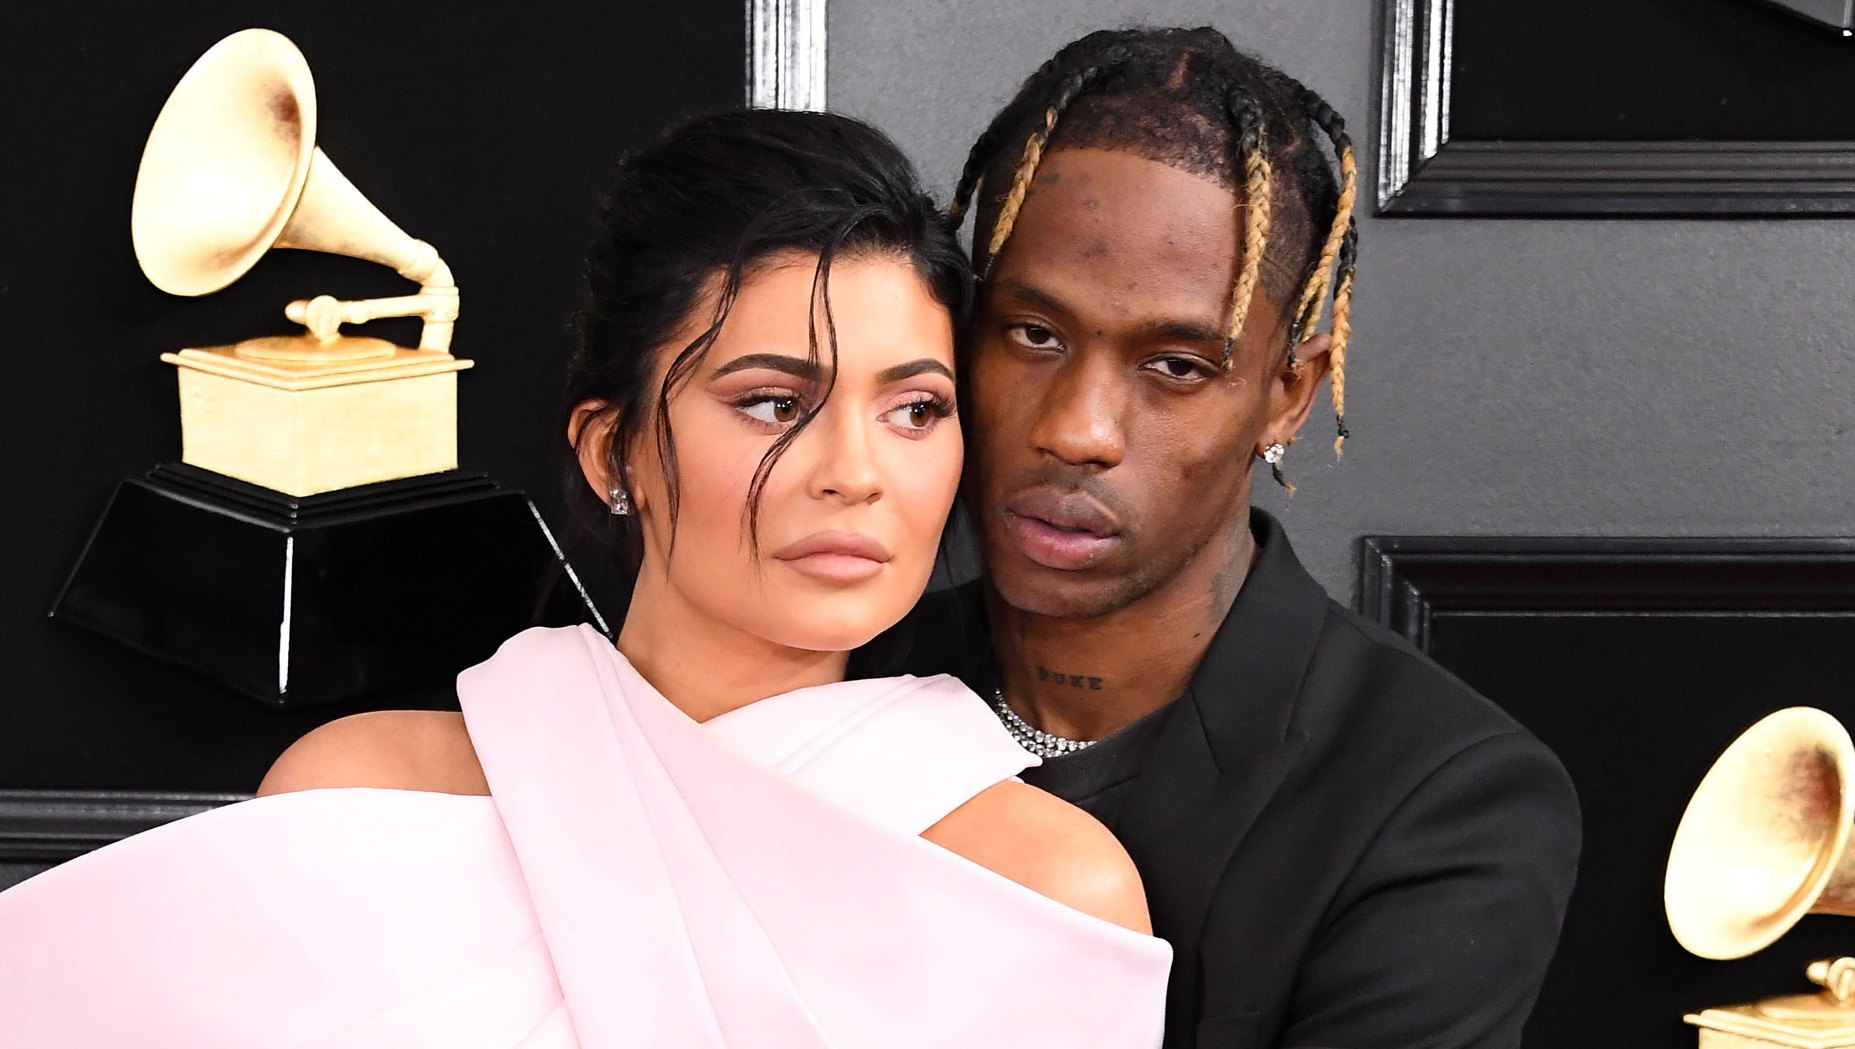 Kylie Doesn't Feel Like She Has Watch Over Travis